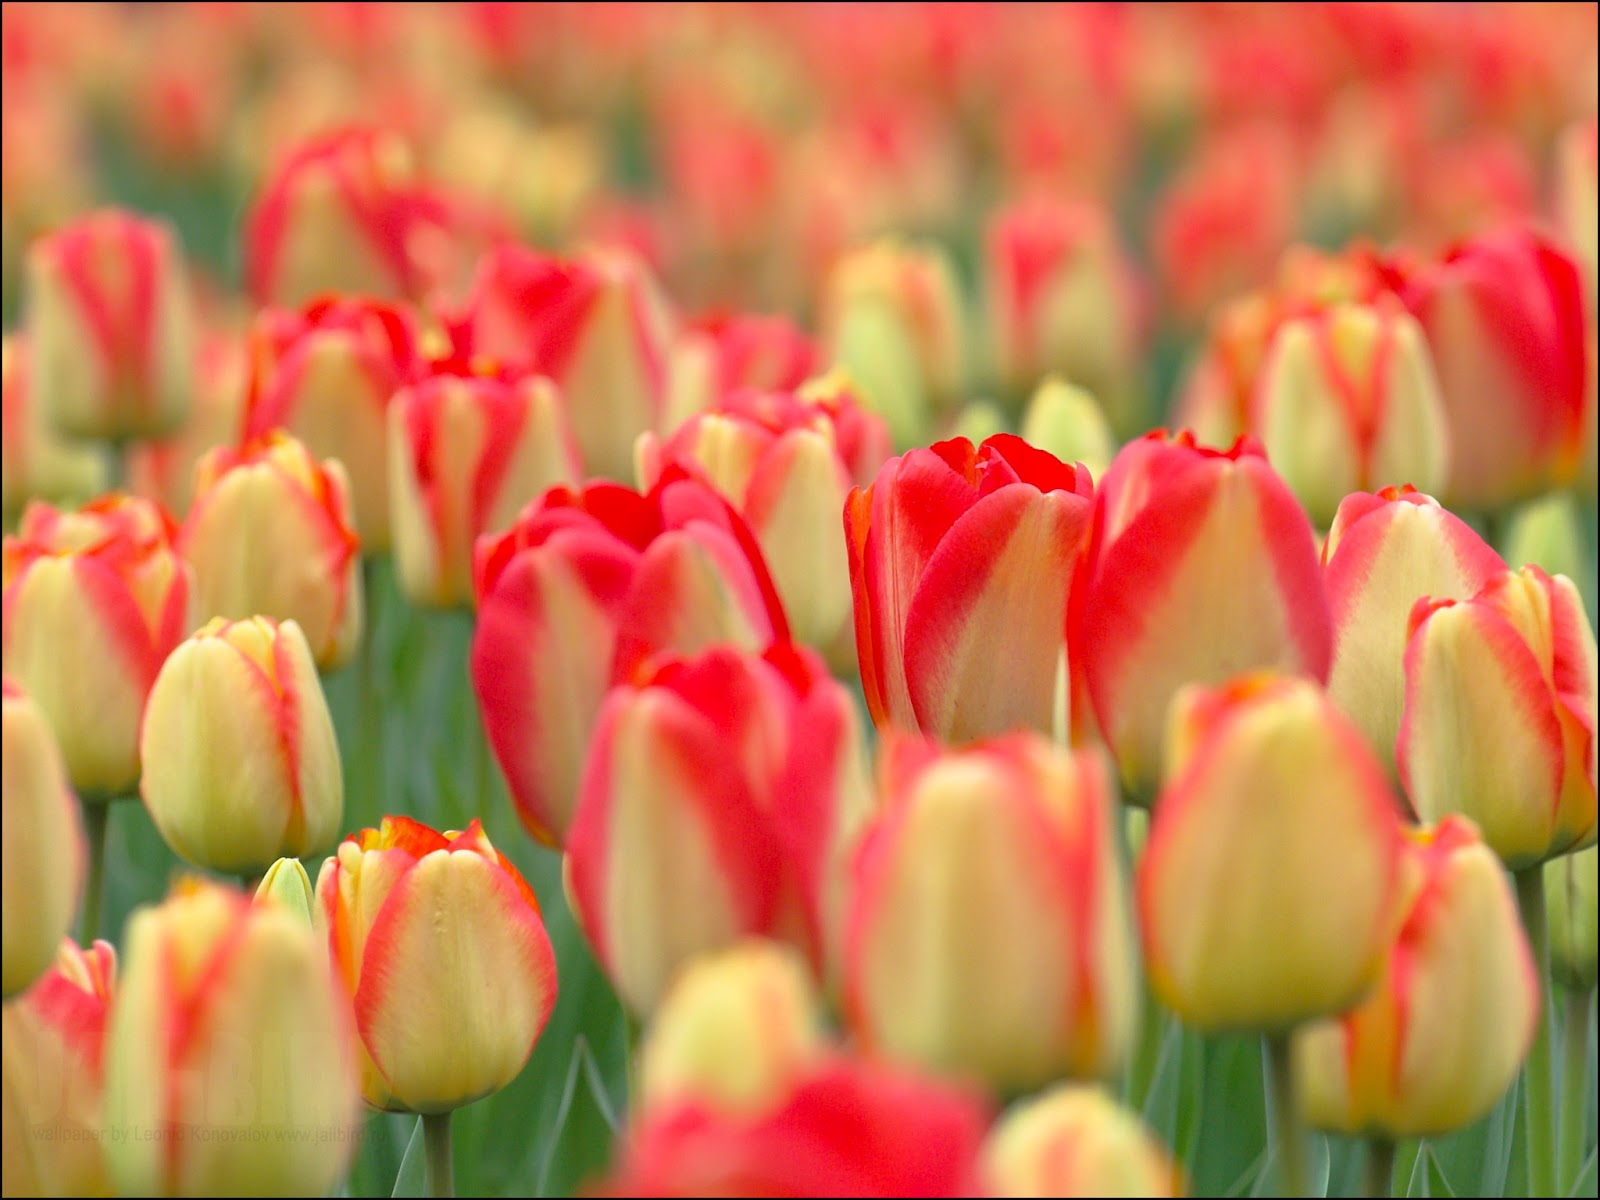 flowers for flower lovers Red yellow tulips flowers pictures